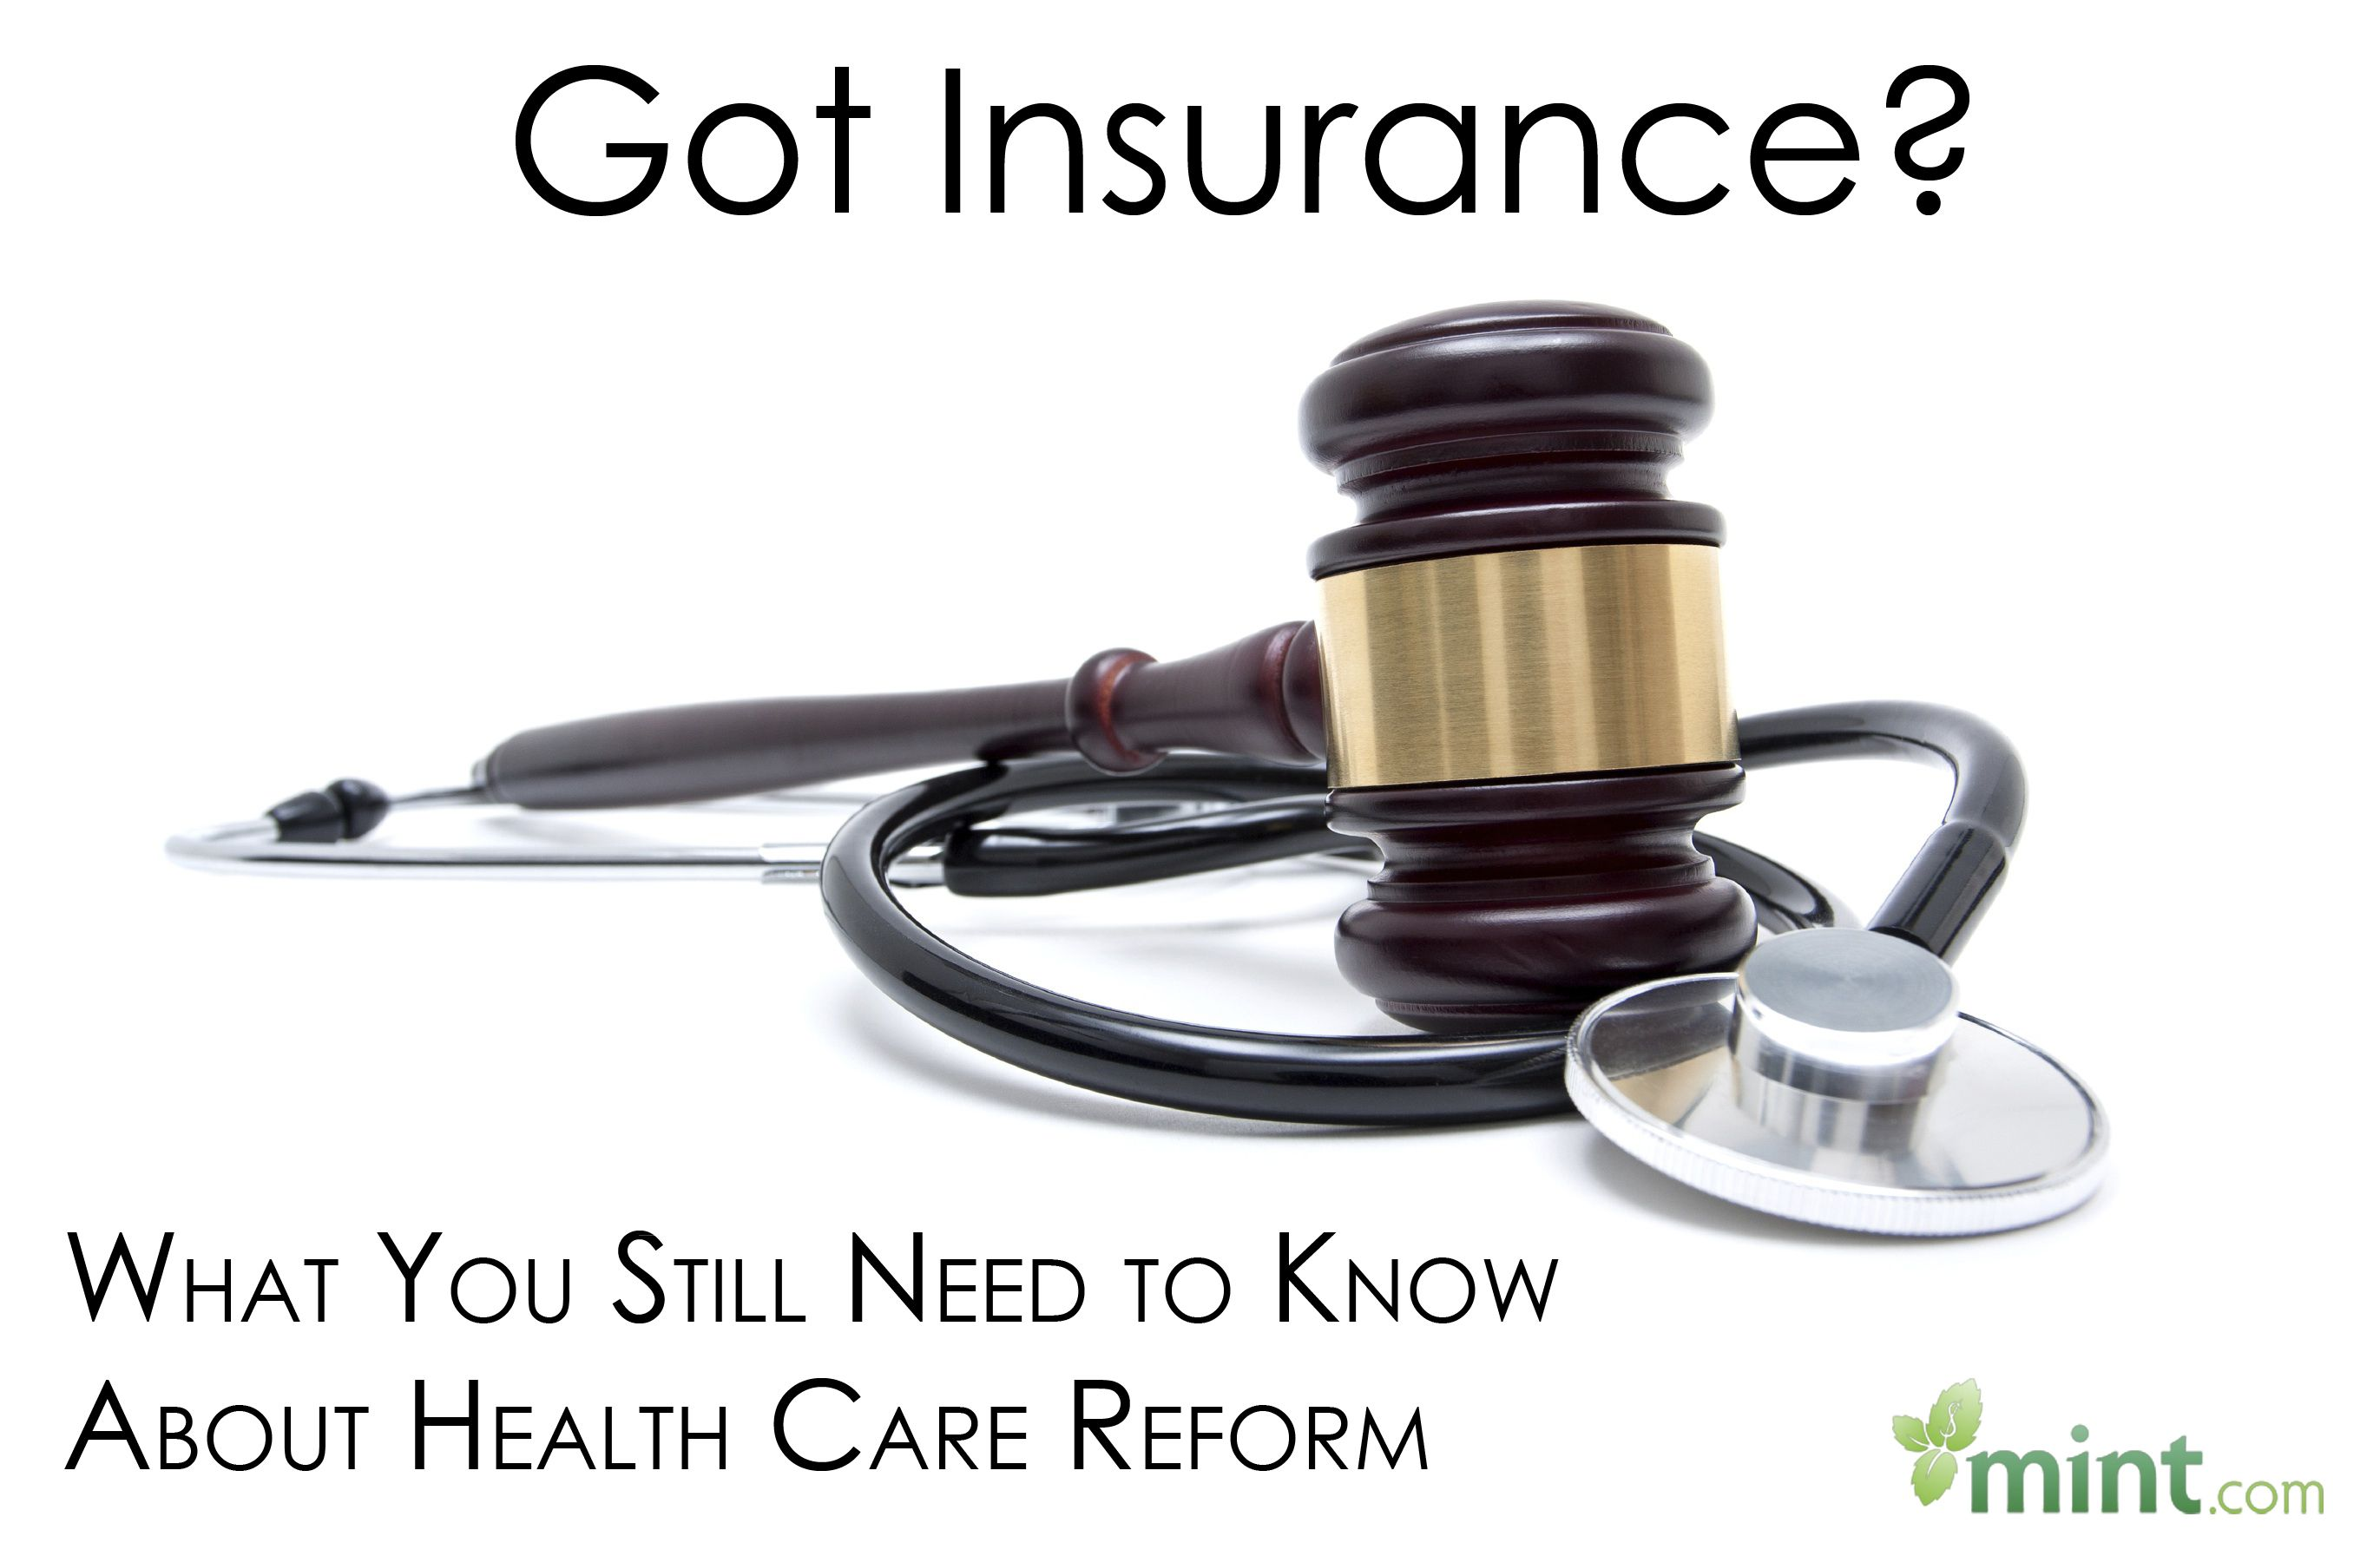 Got Insurance? What You Still Need to Know About Health